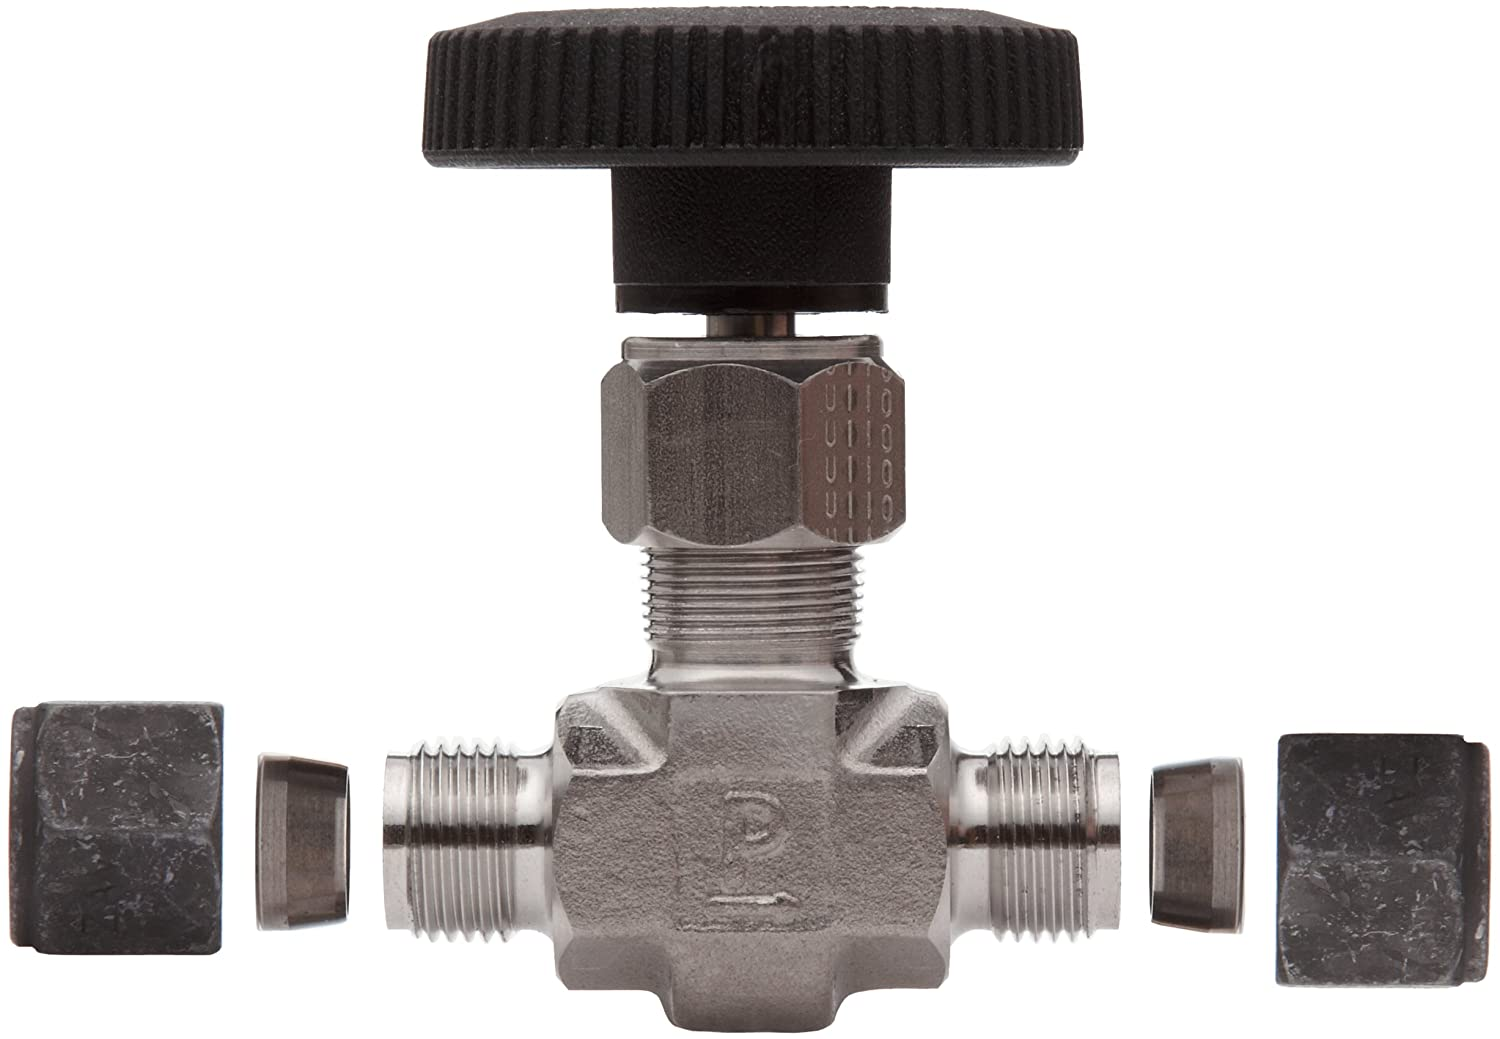 Parker 316 Stainless Steel Inline Process Needle Valve with PTFE Stem Seal 3//8 Compression CPI Inlet//Outlet Port 5000 psi 3//8 Compression CPI Inlet//Outlet Port 6Z-V6LN-SS